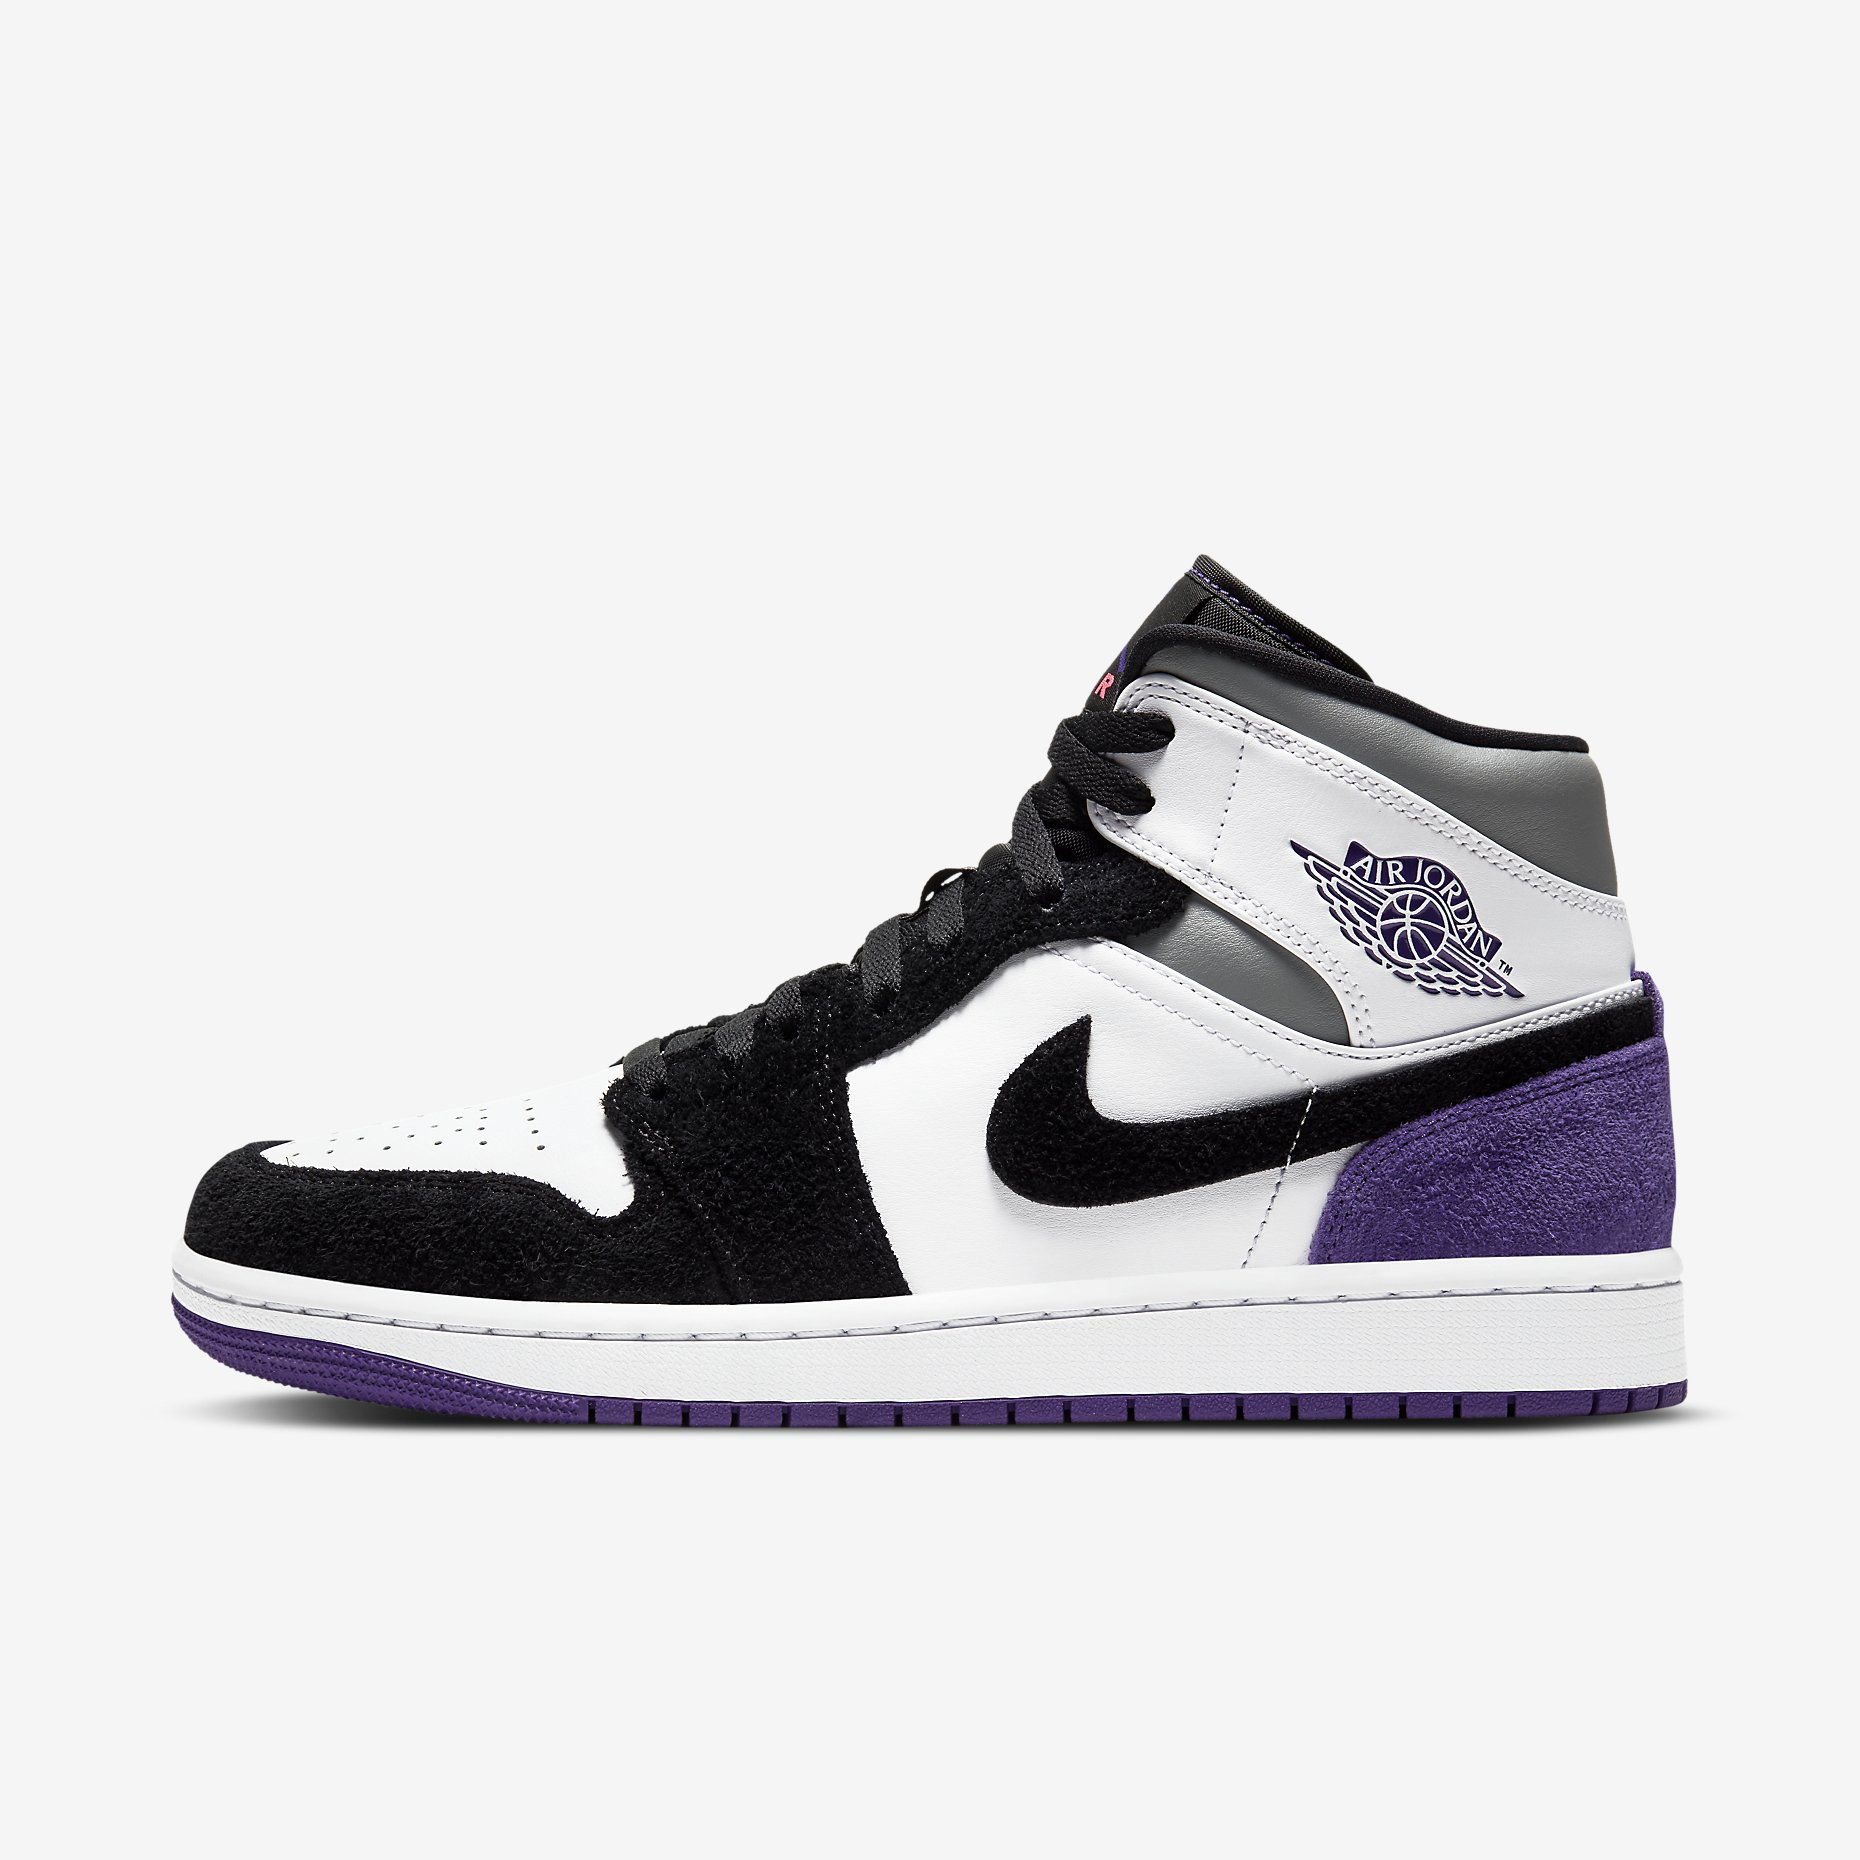 Air Jordan 1 Mid SE 'Court Purple'}